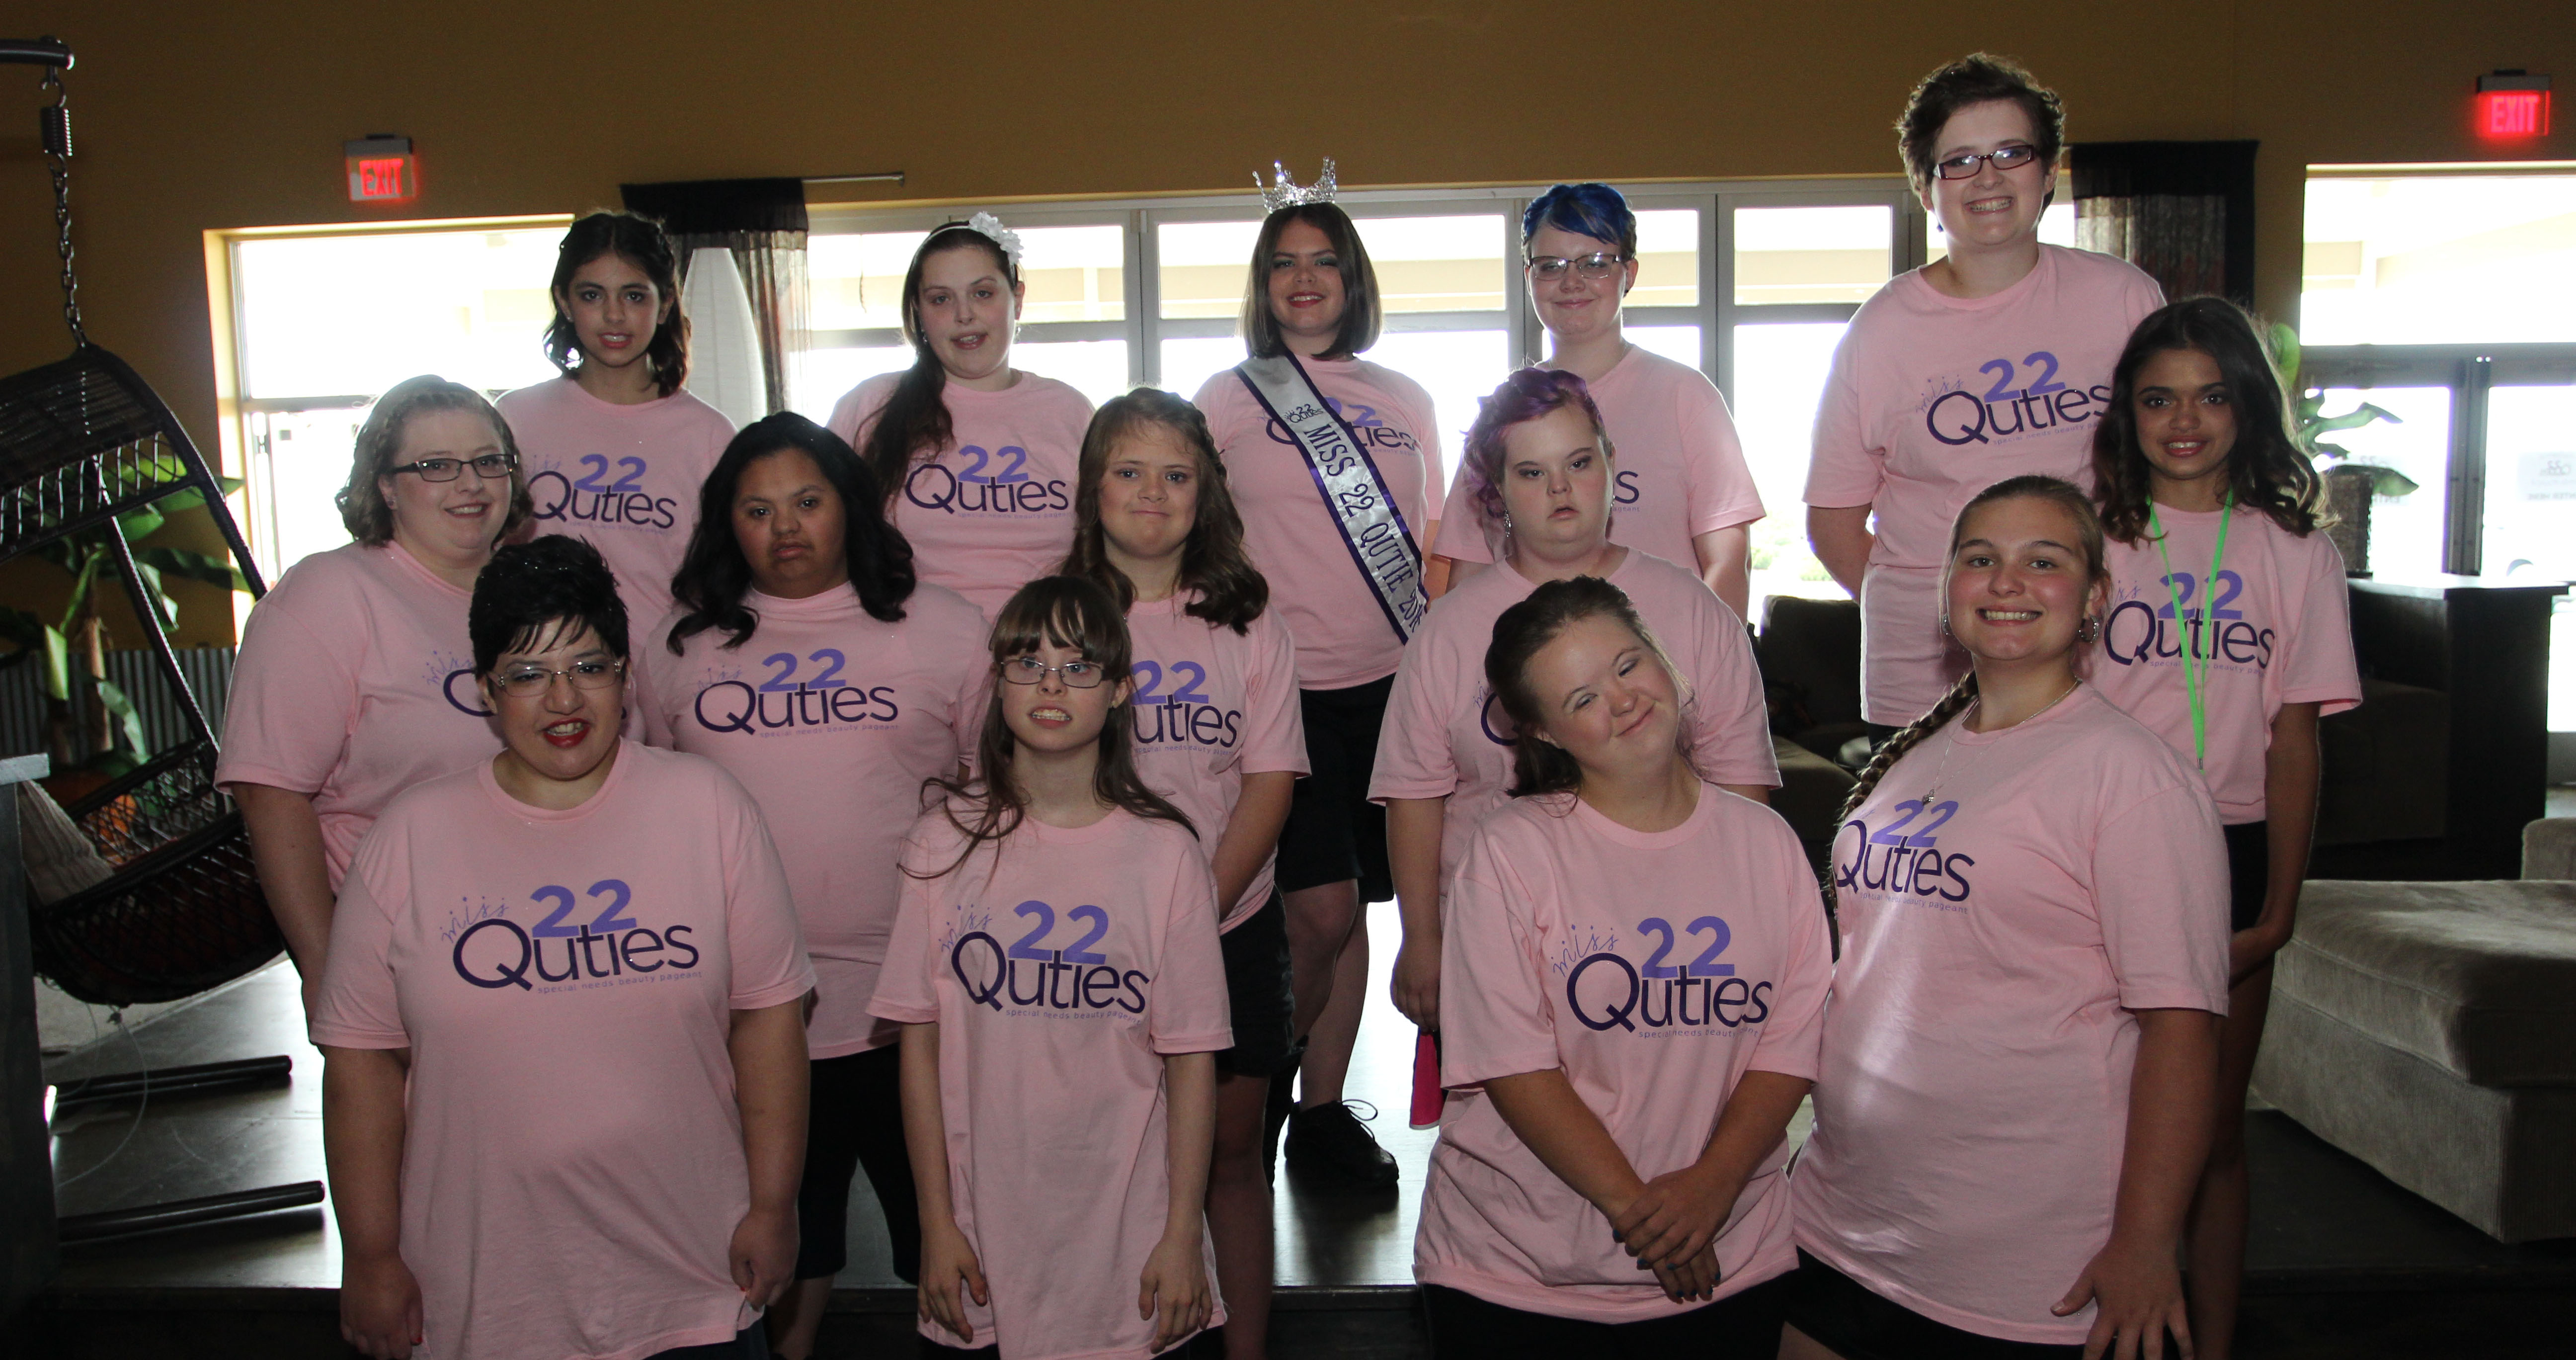 Miss 22 Quties Special Needs Beauty Pageant